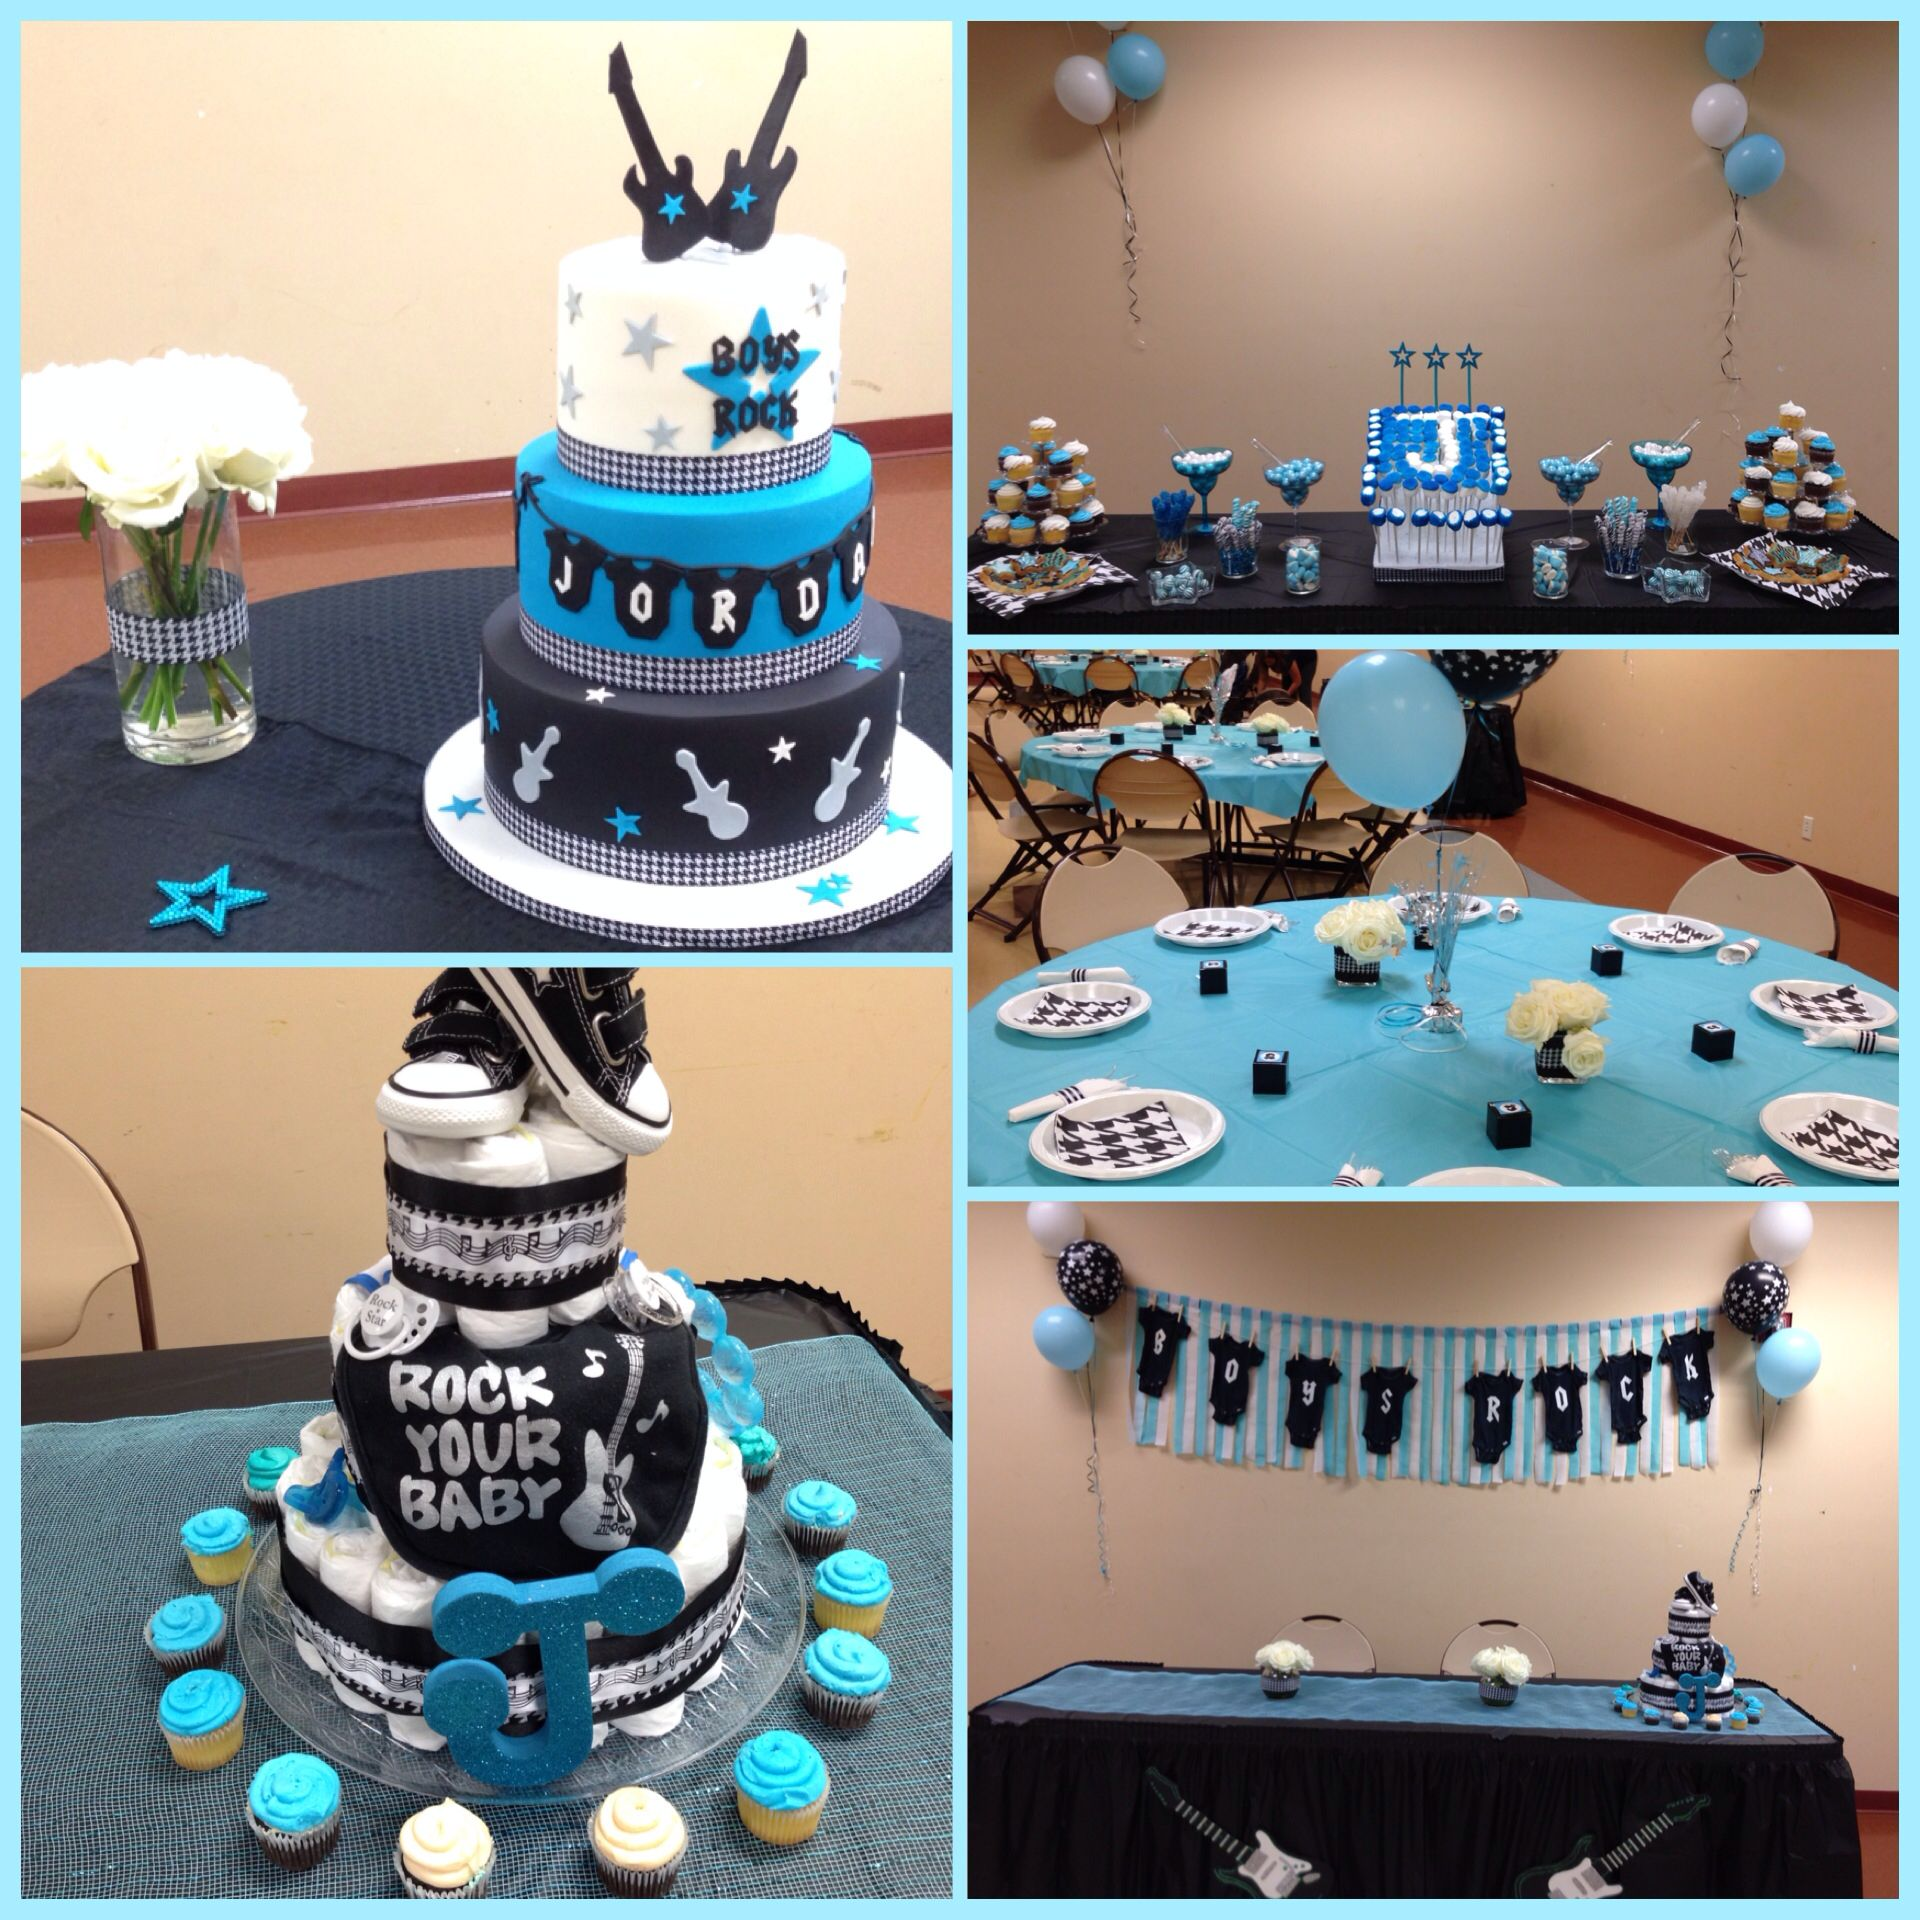 Rock A Bye Baby A Great Baby Shower Theme Blue White Black